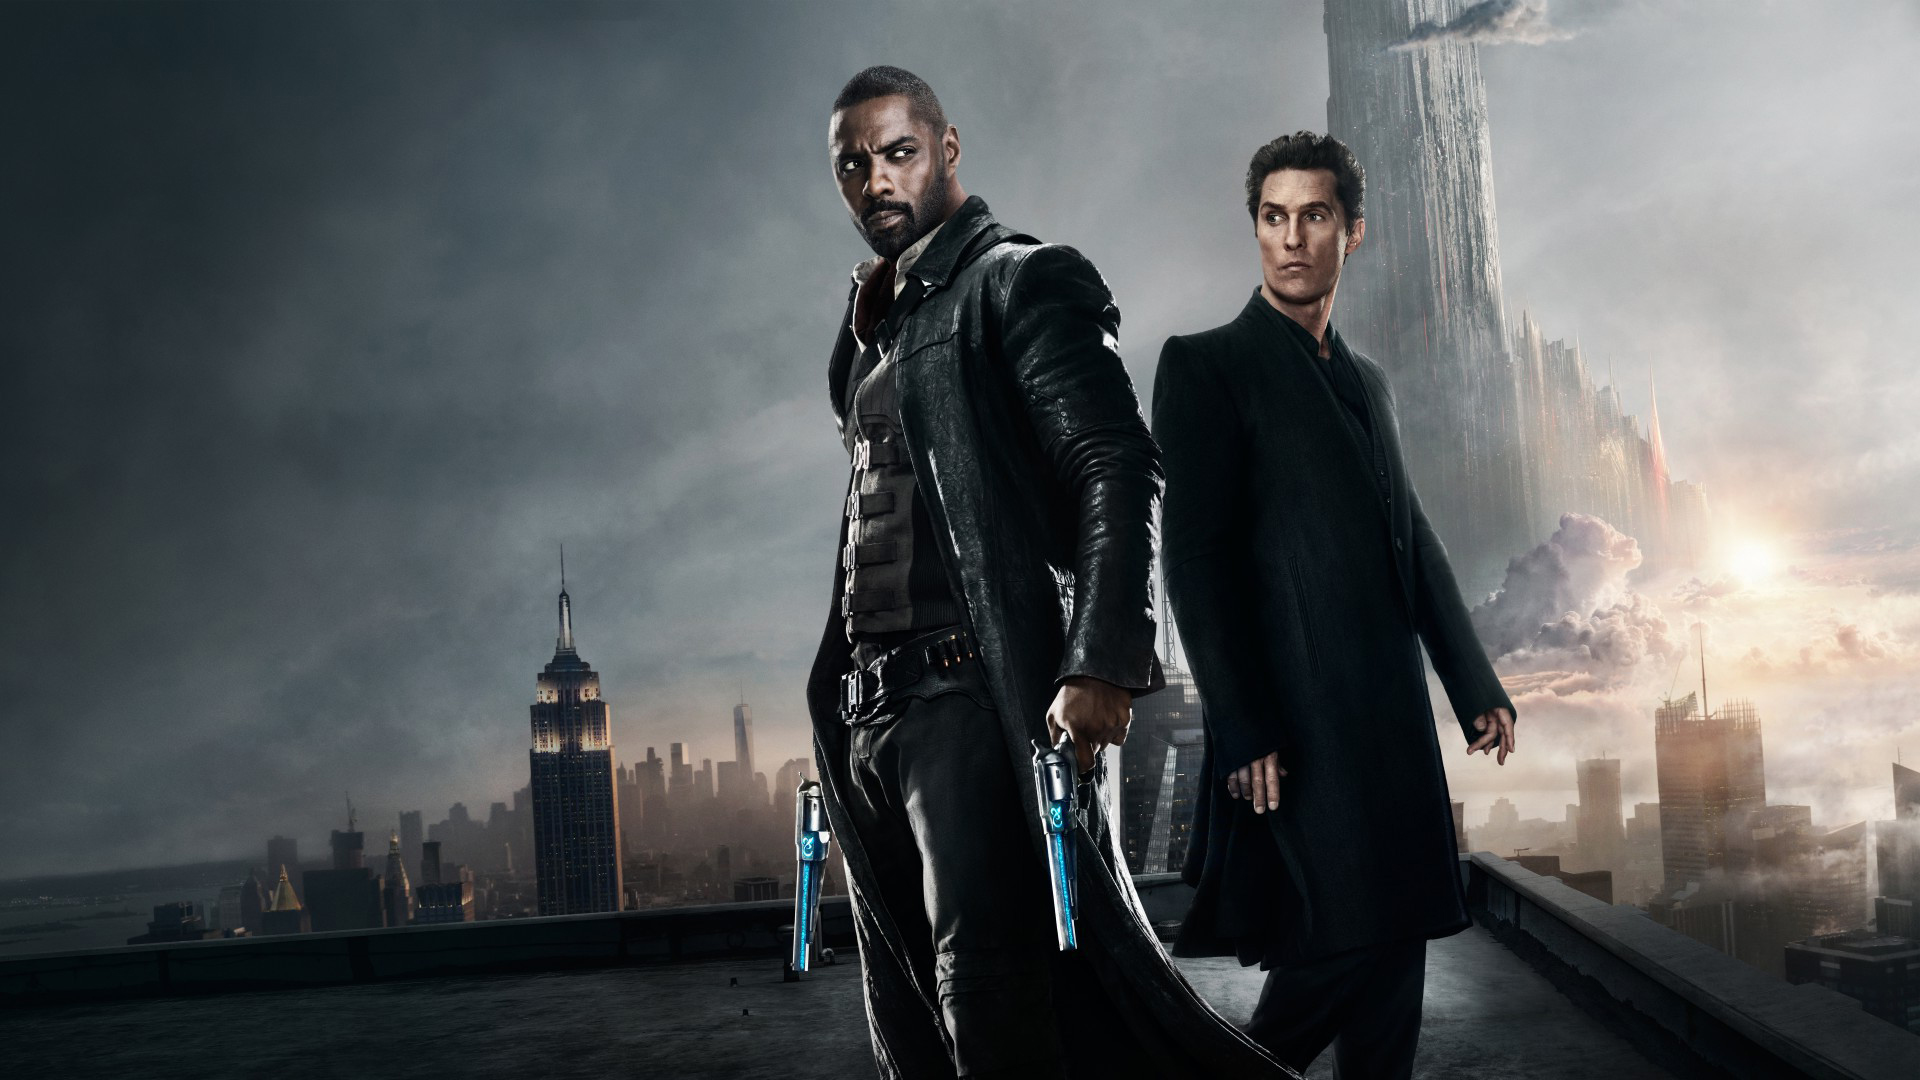 Idris Elba Films Dark Tower Scenes With Tom Taylor As Jake The Jam Report Review The Dark Tower